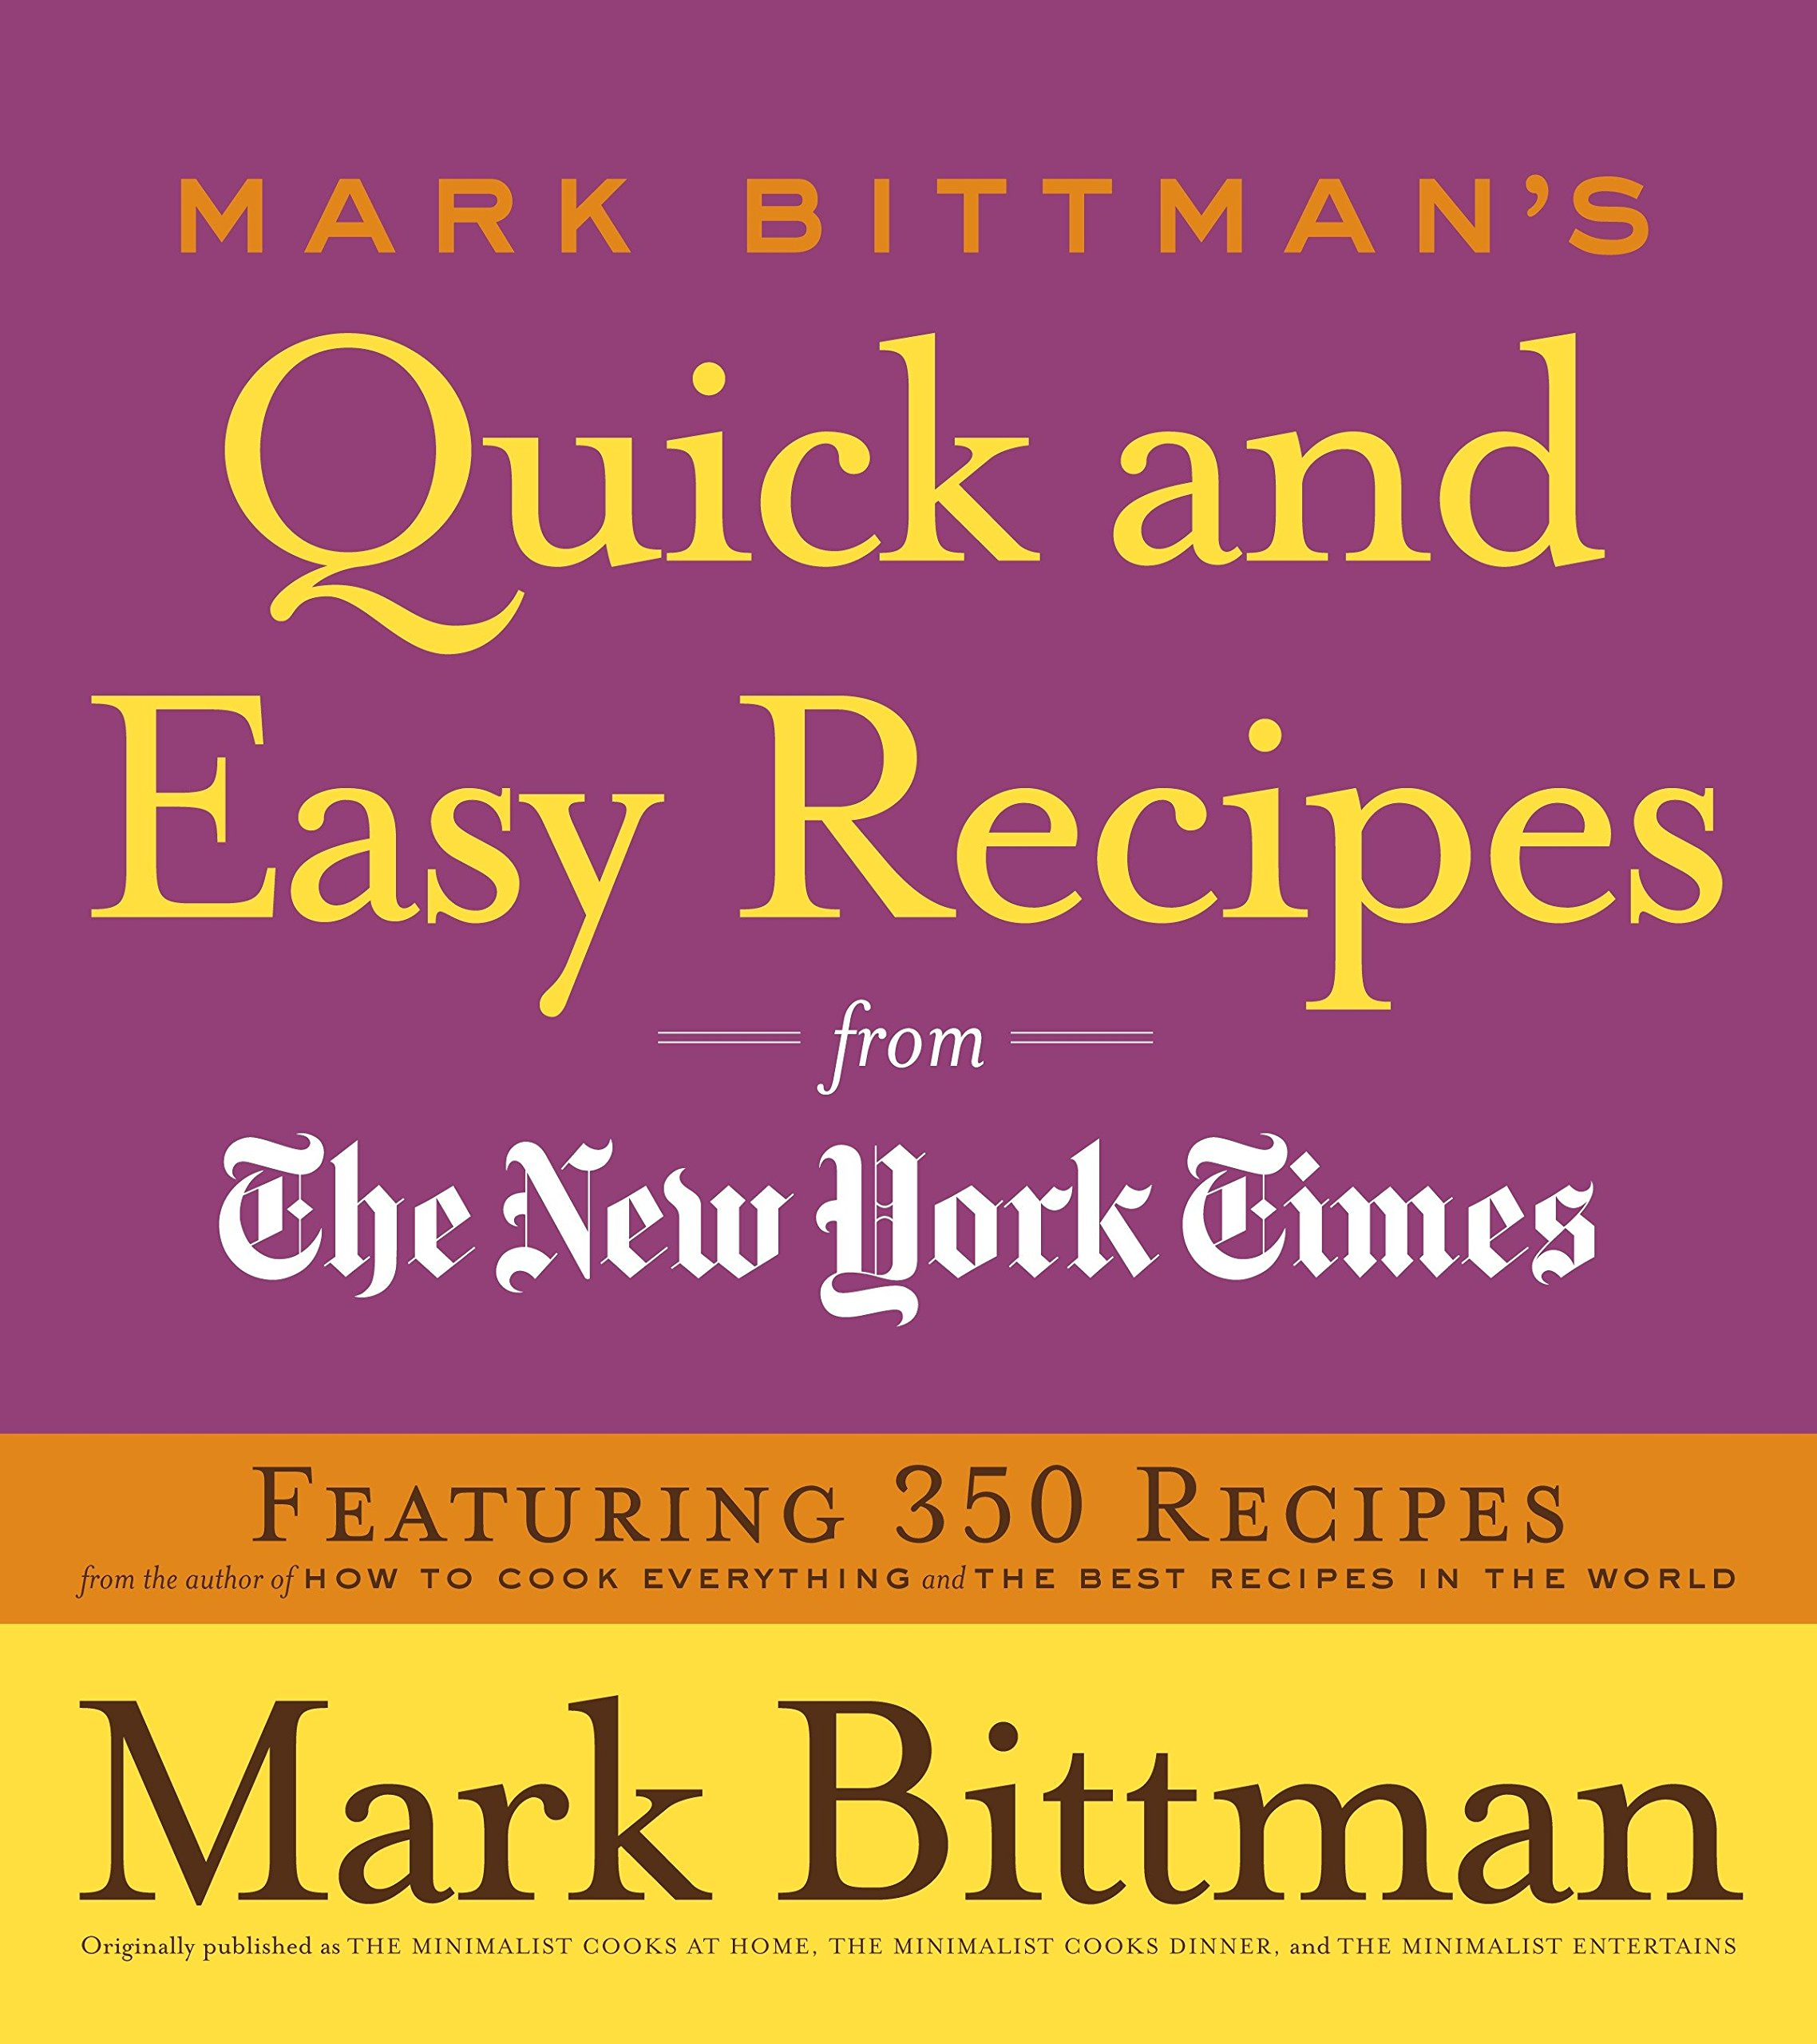 Download Mark Bittman's Quick and Easy Recipes from the New York Times: Featuring 350 recipes from the author of HOW TO COOK EVERYTHING and THE BEST RECIPES IN THE WORLD pdf